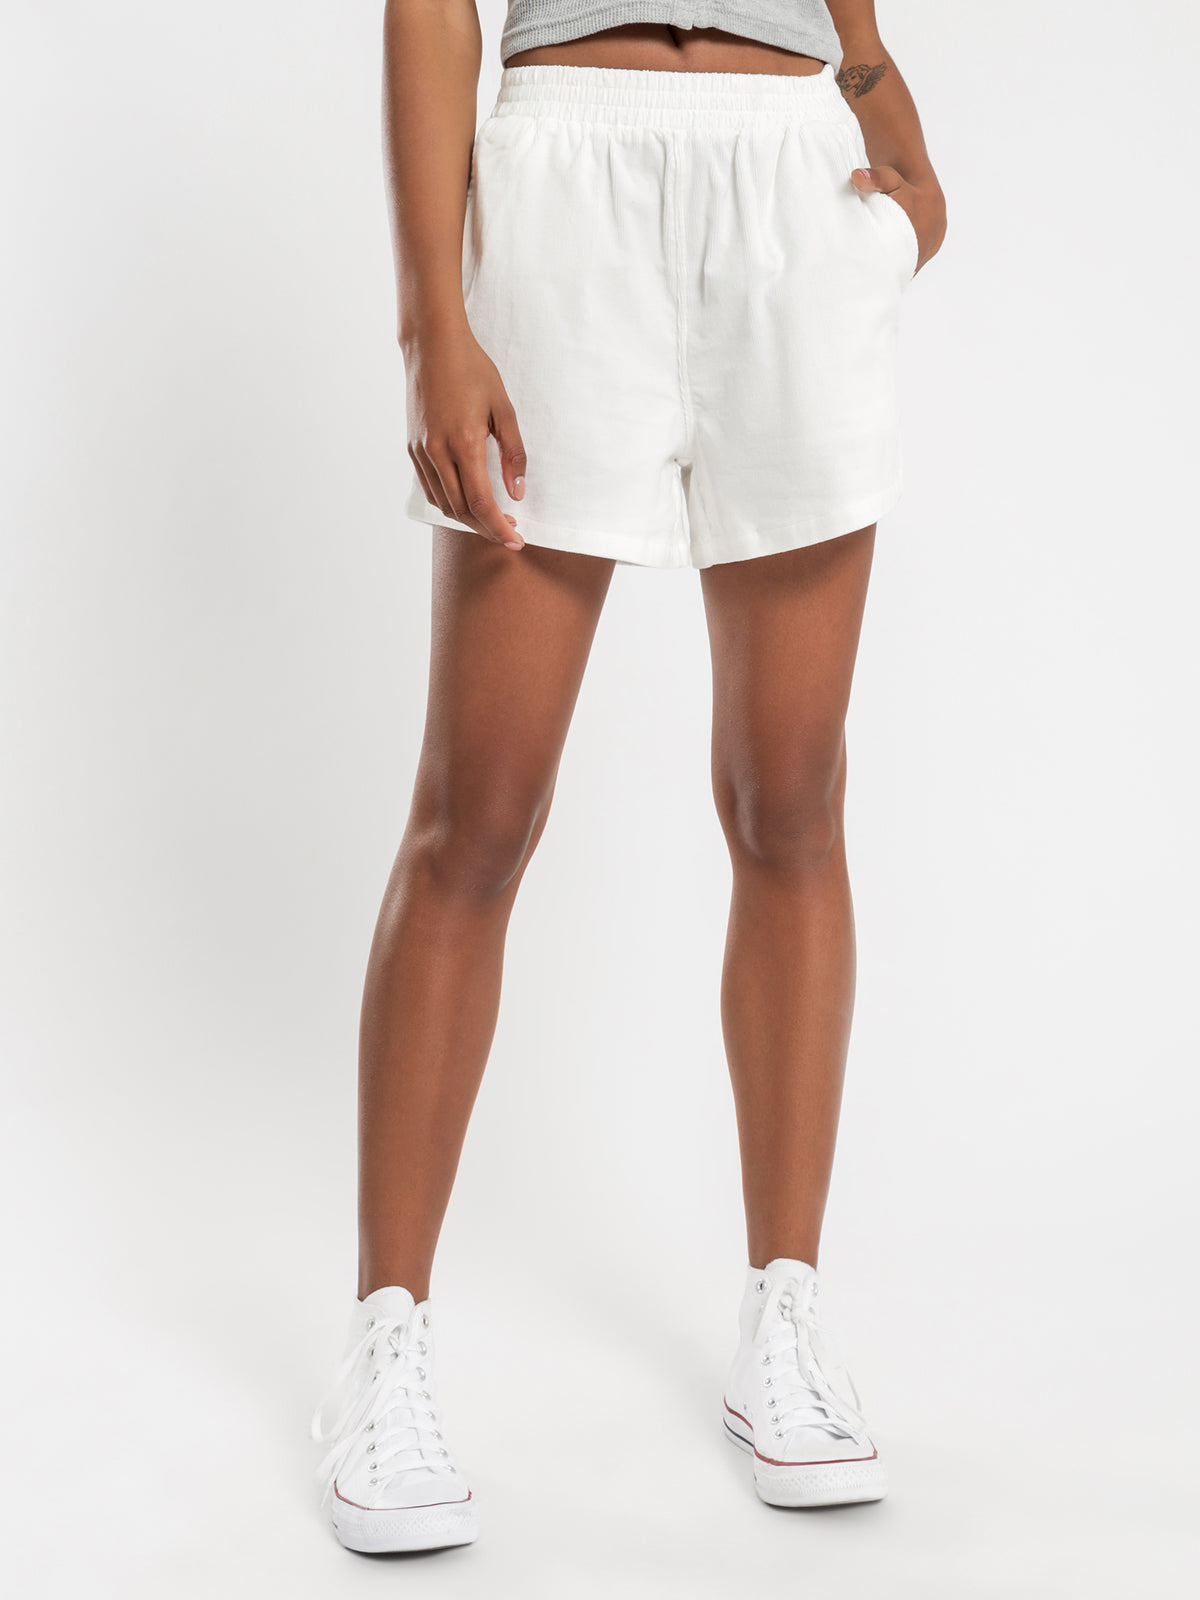 Stock Cord Shorts in White